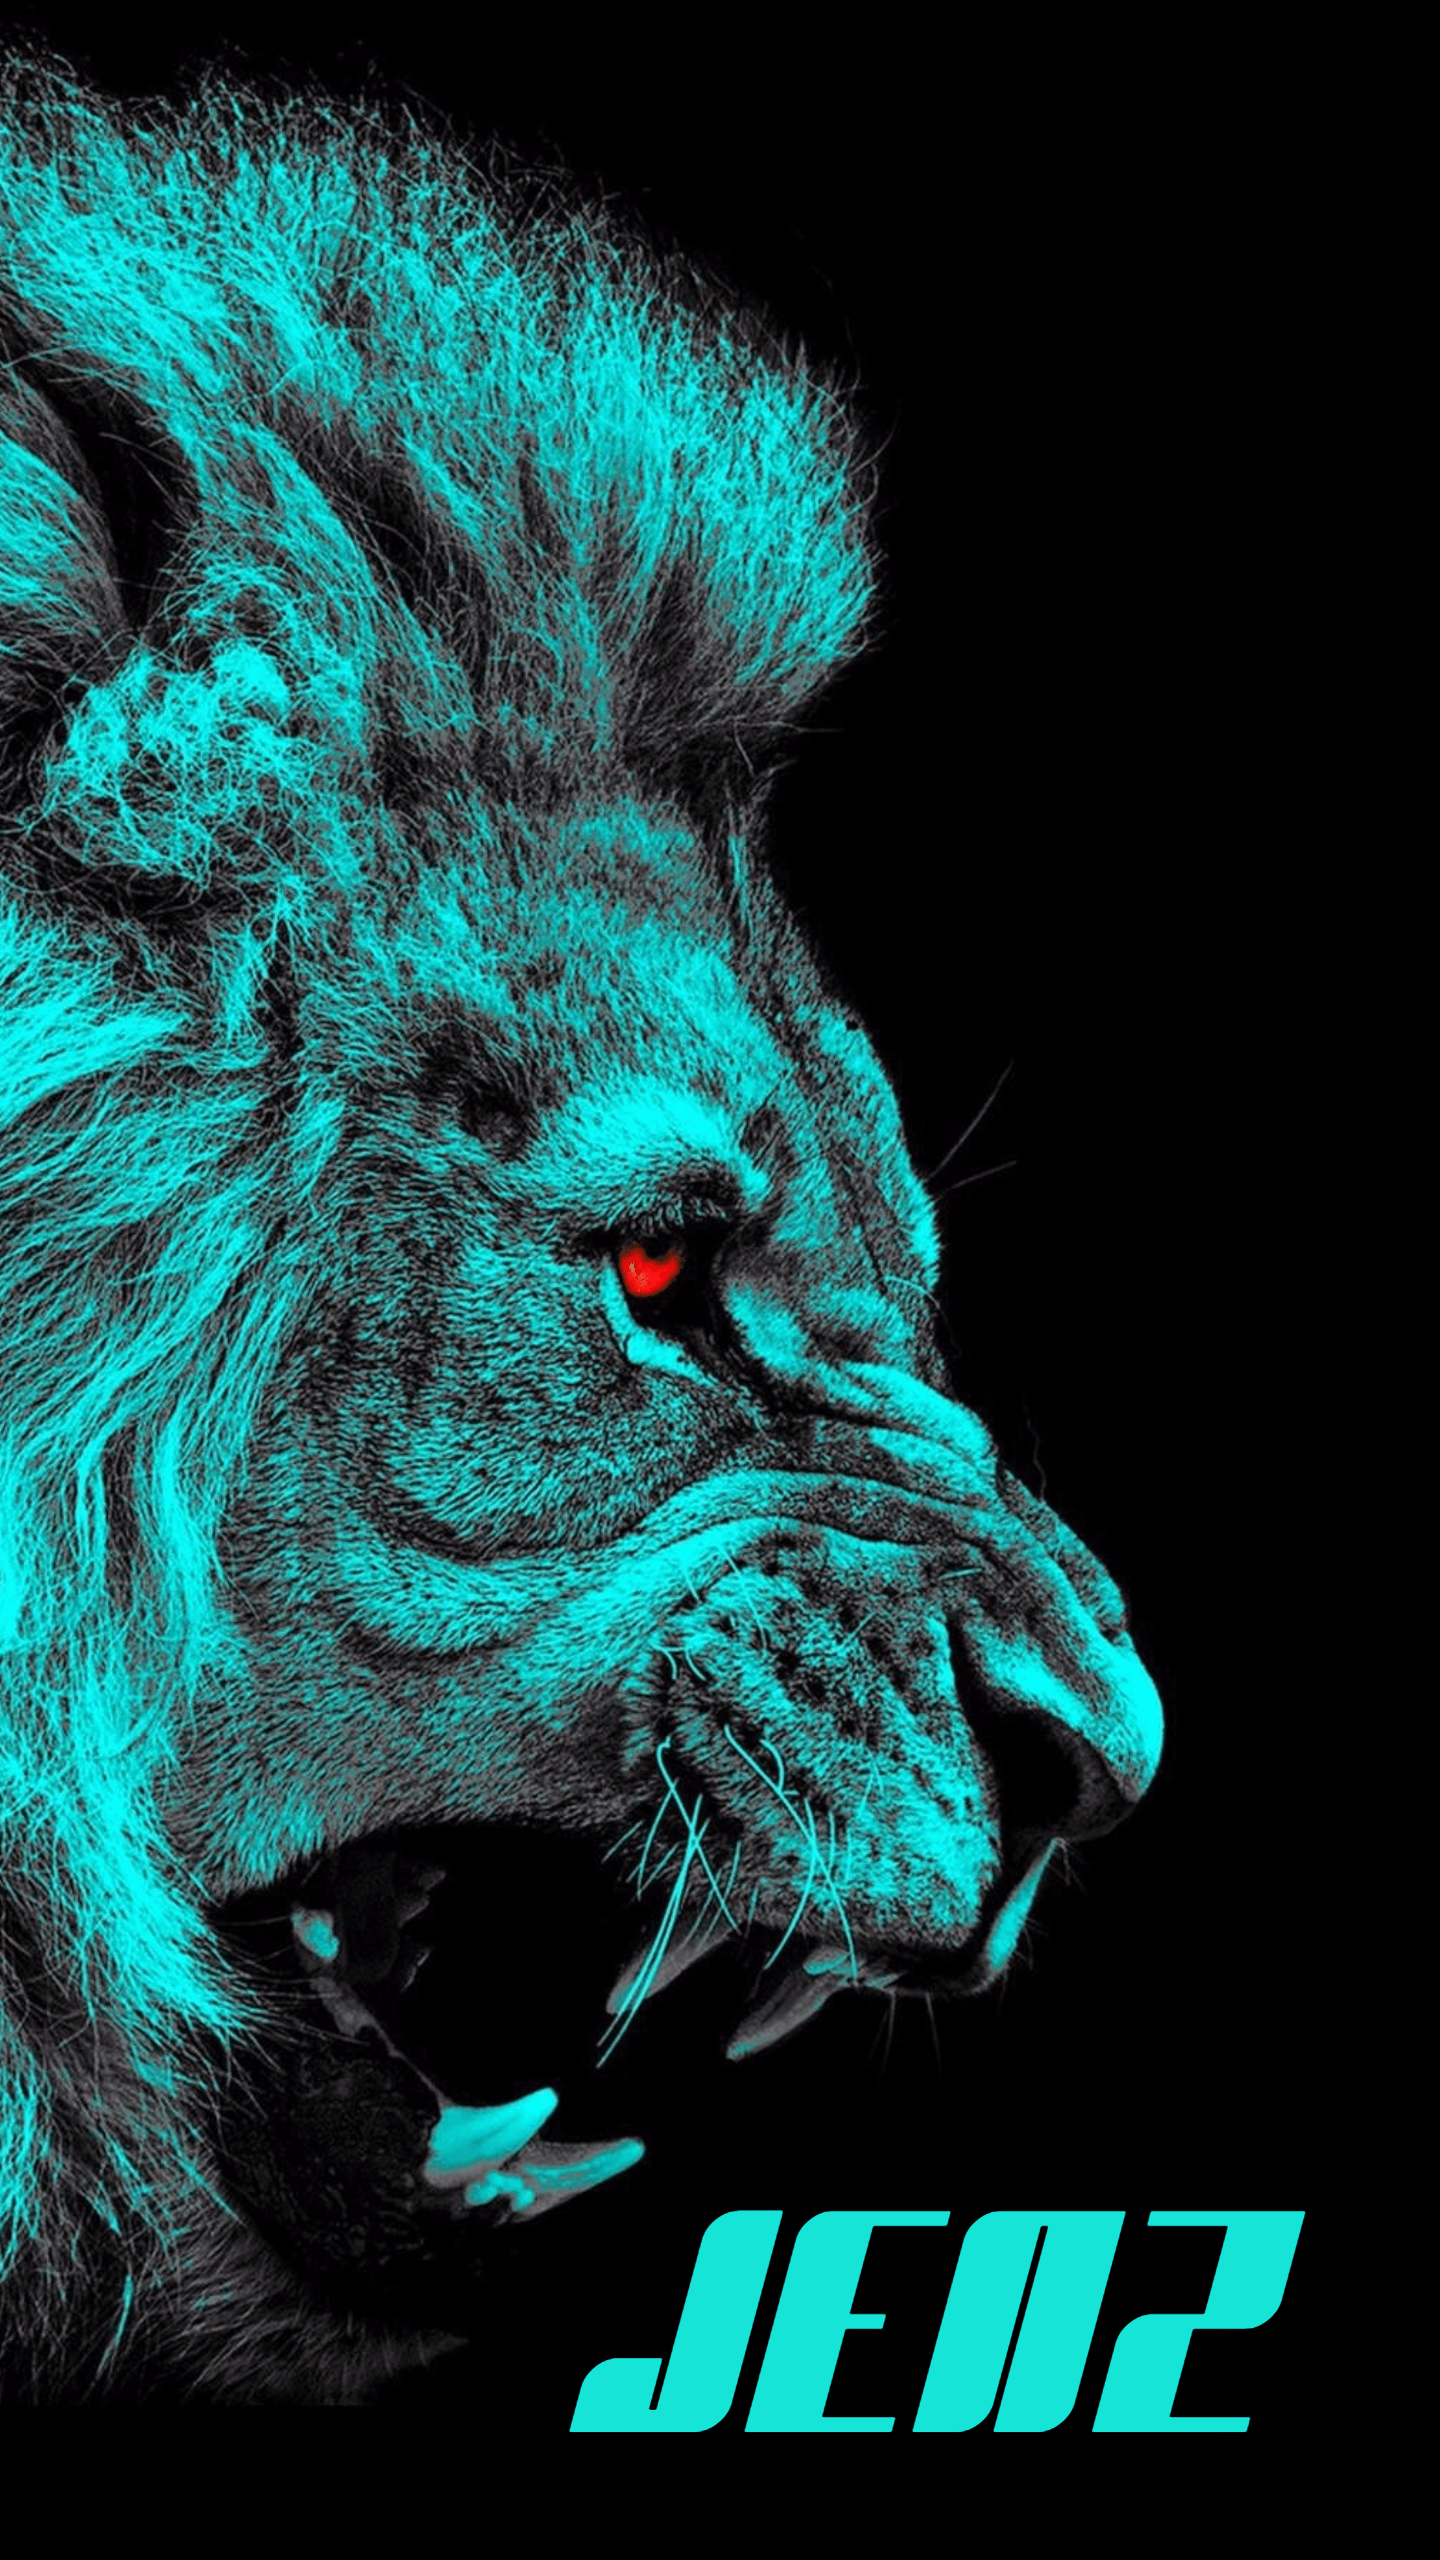 Mammal,                Poster,                Organism,                Computer,                Wallpaper,                Special,                Effects,                Font,                Graphic,                Design,                Big,                Cats,                Darkness,                 Free Image